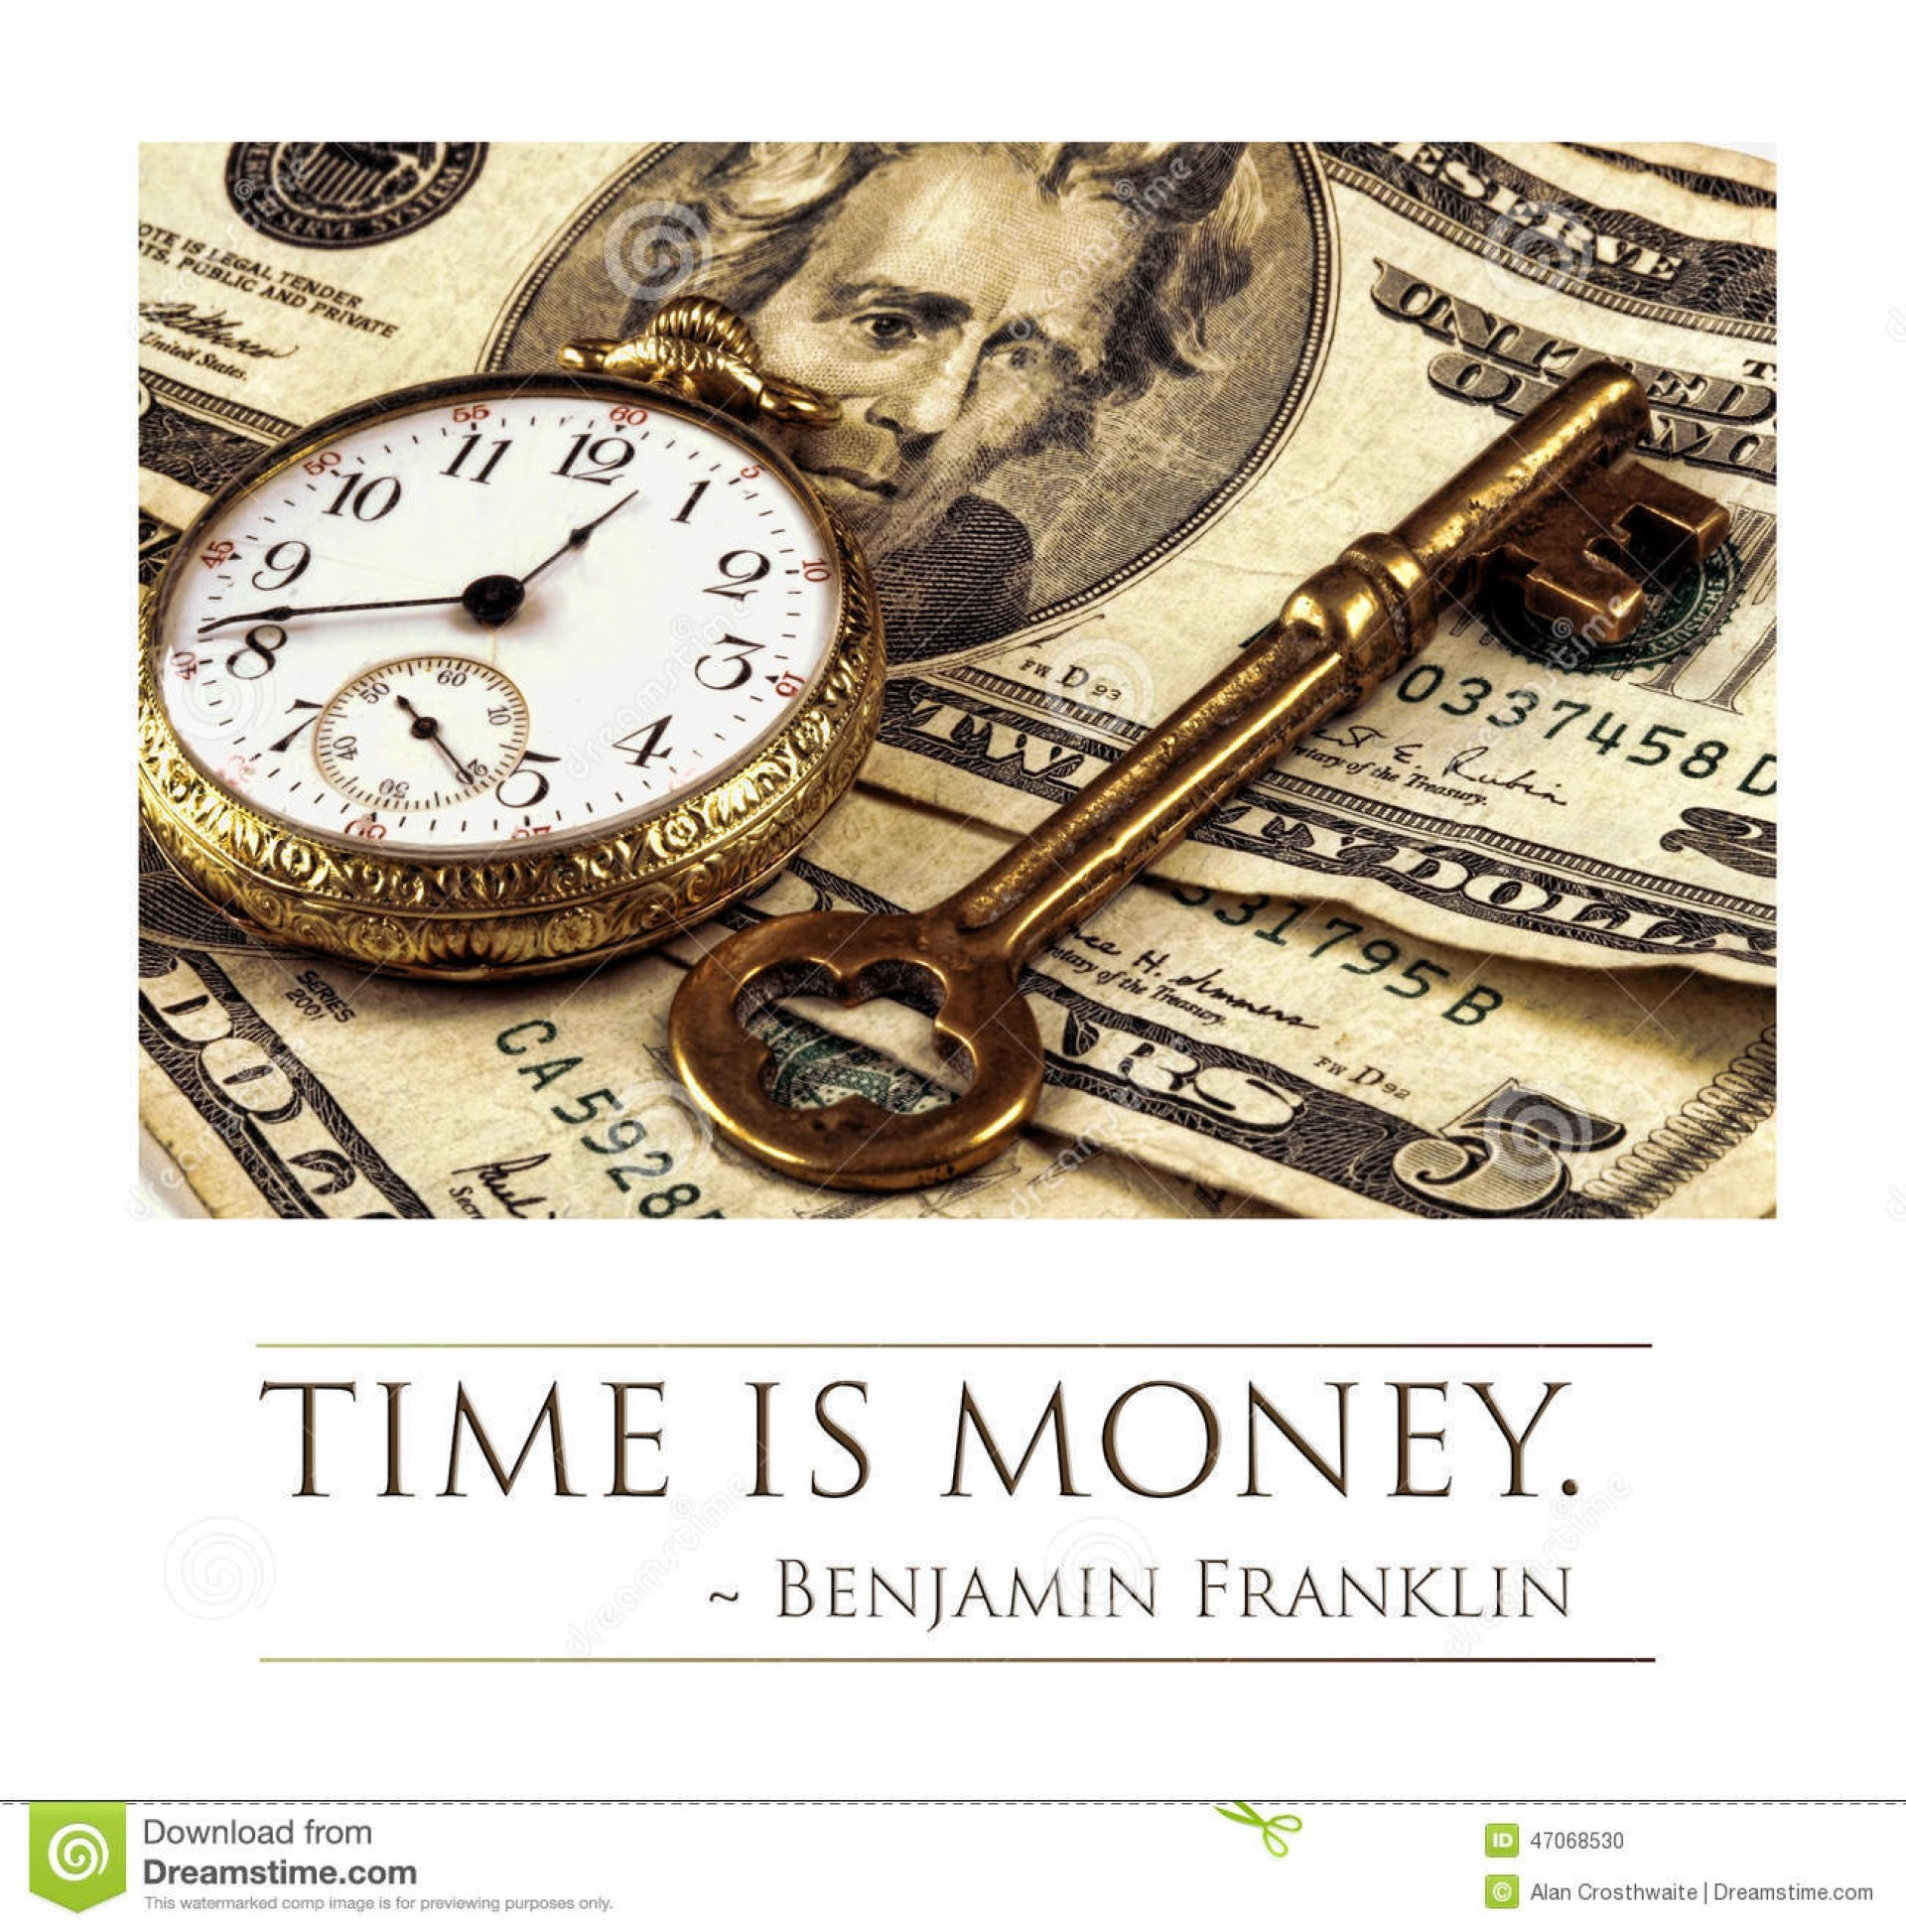 011 Essay About Time Is Money Old Pocket Watch Cash Skeleton Key Concept Image Quote Bottom Benjamin Franklin Frightening On In Urdu Hindi 1920